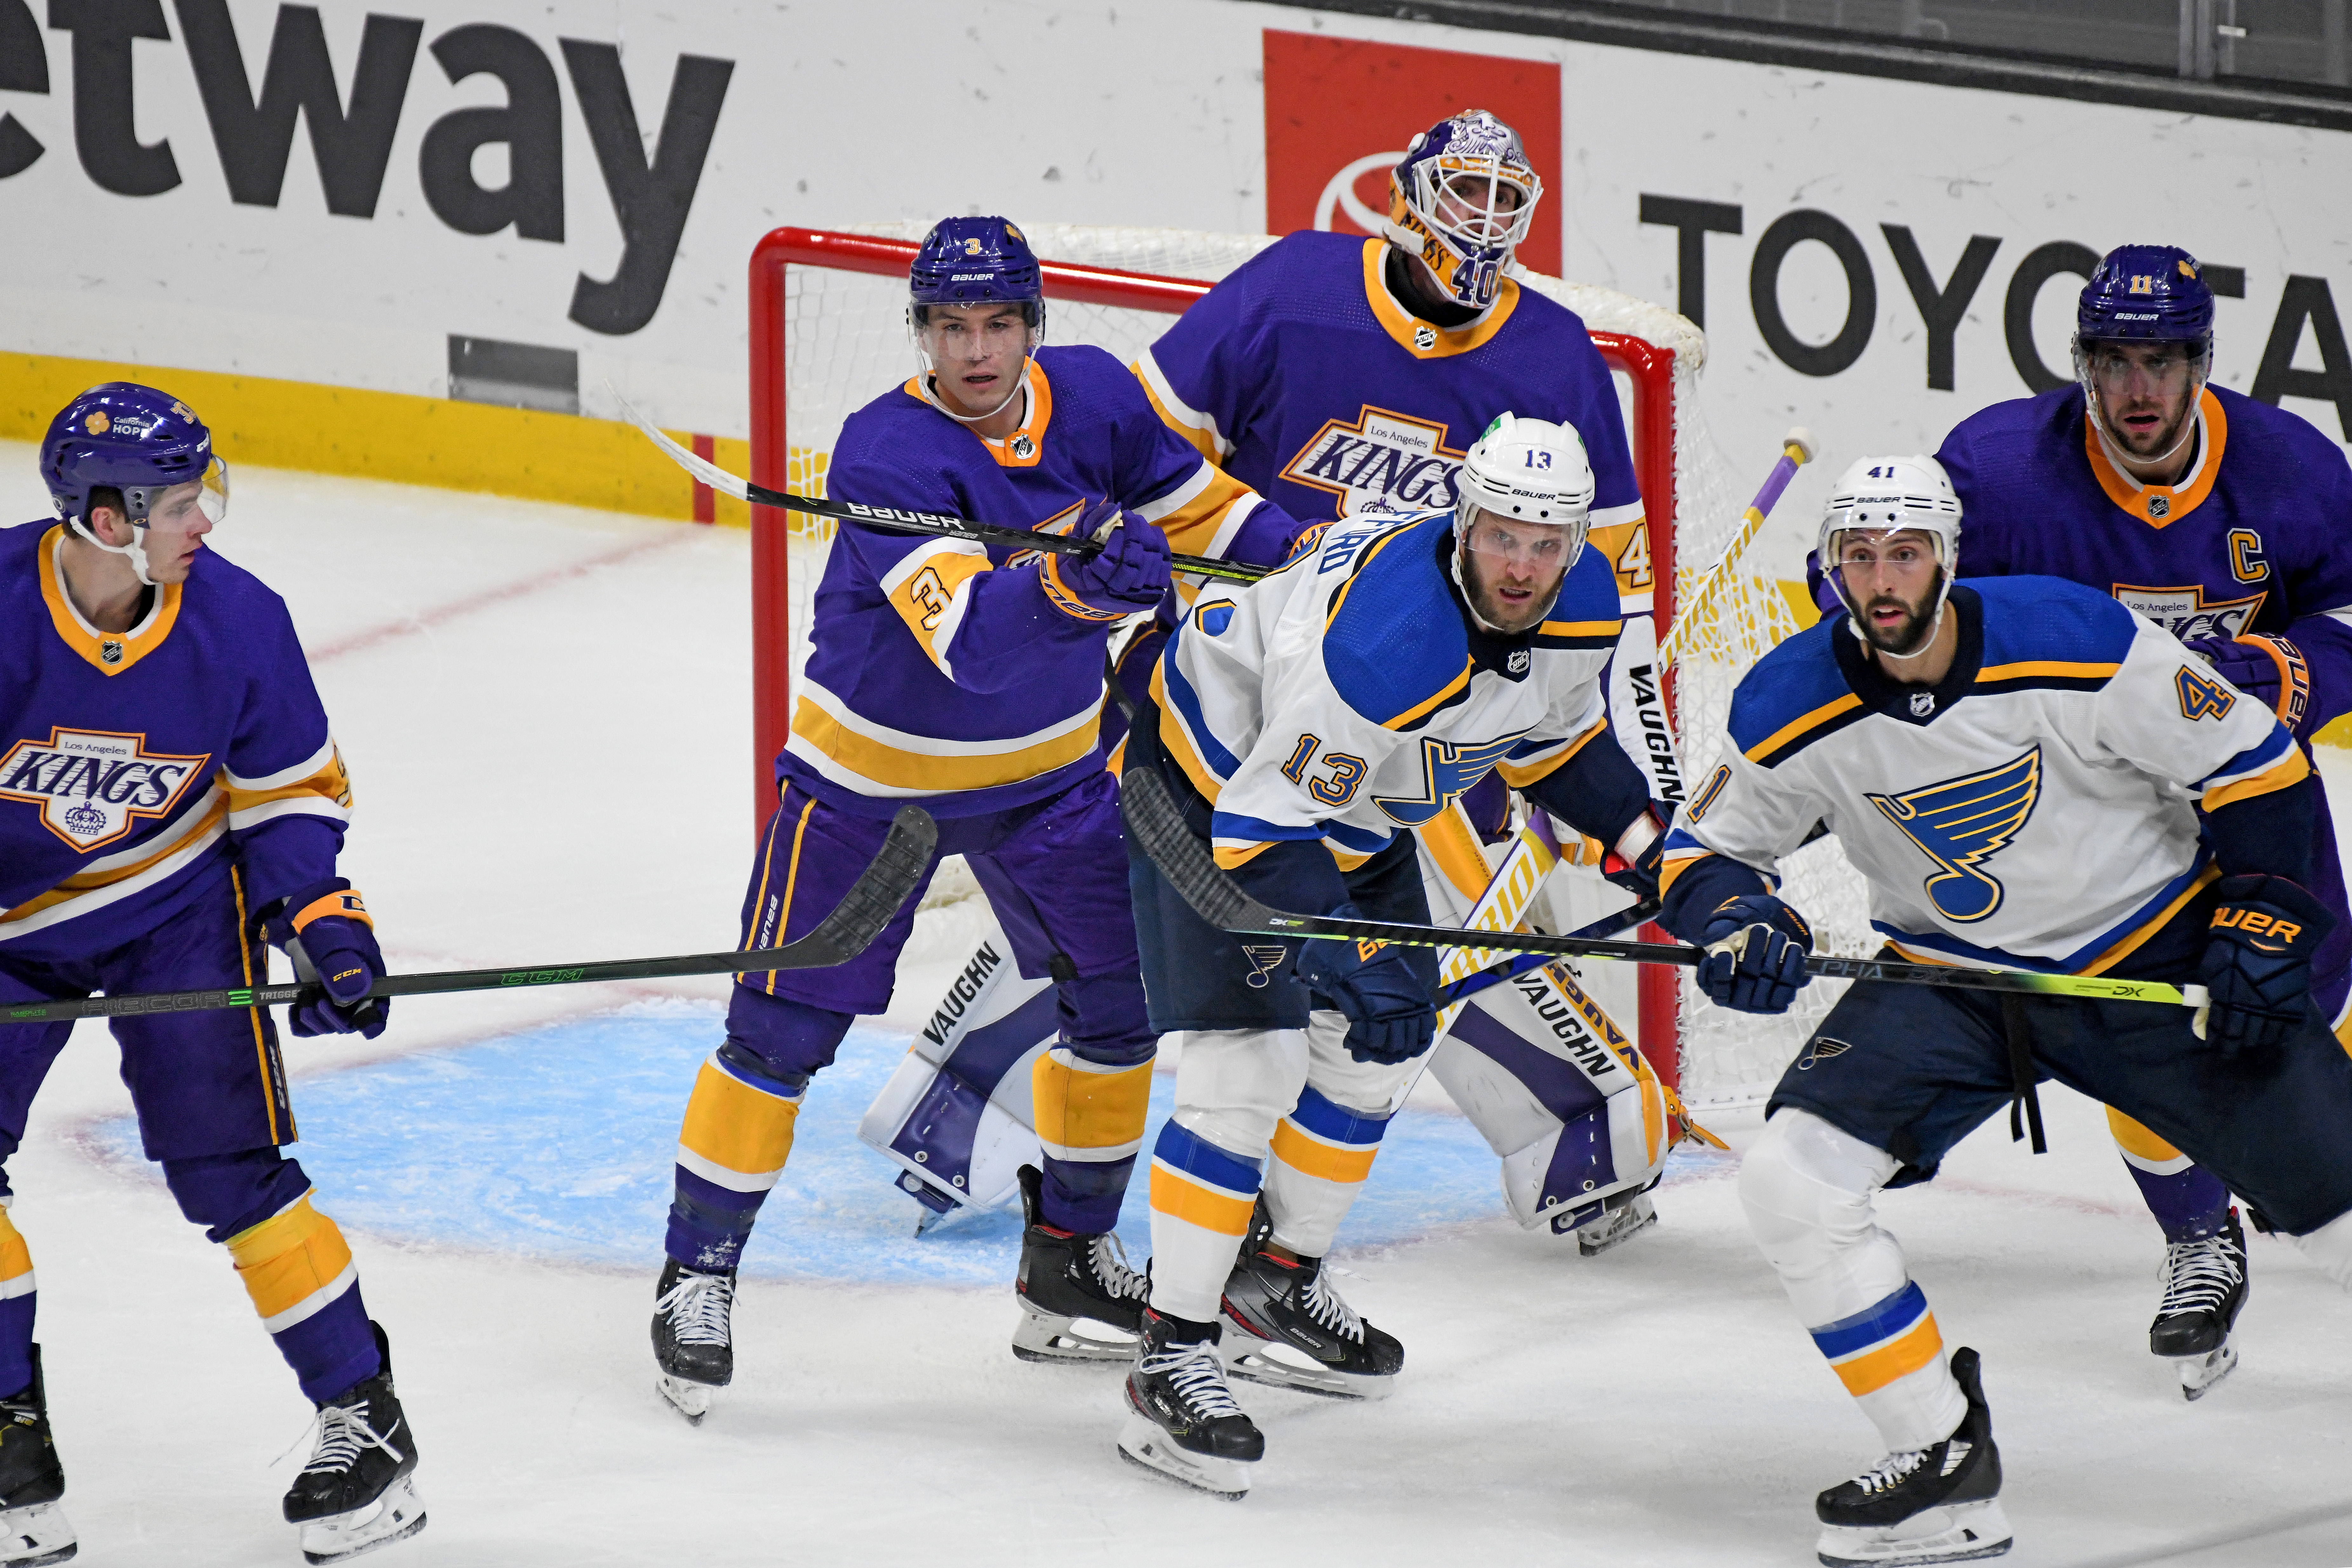 Los Angeles Kings Defenceman Matt Roy (3) battles with St. Louis Blues Left Wing Kyle Clifford (13) as Los Angeles Kings Goalie Cal Petersen (40) looks on during a National Hockey League game at the Staples Center in Los Angeles, CA.